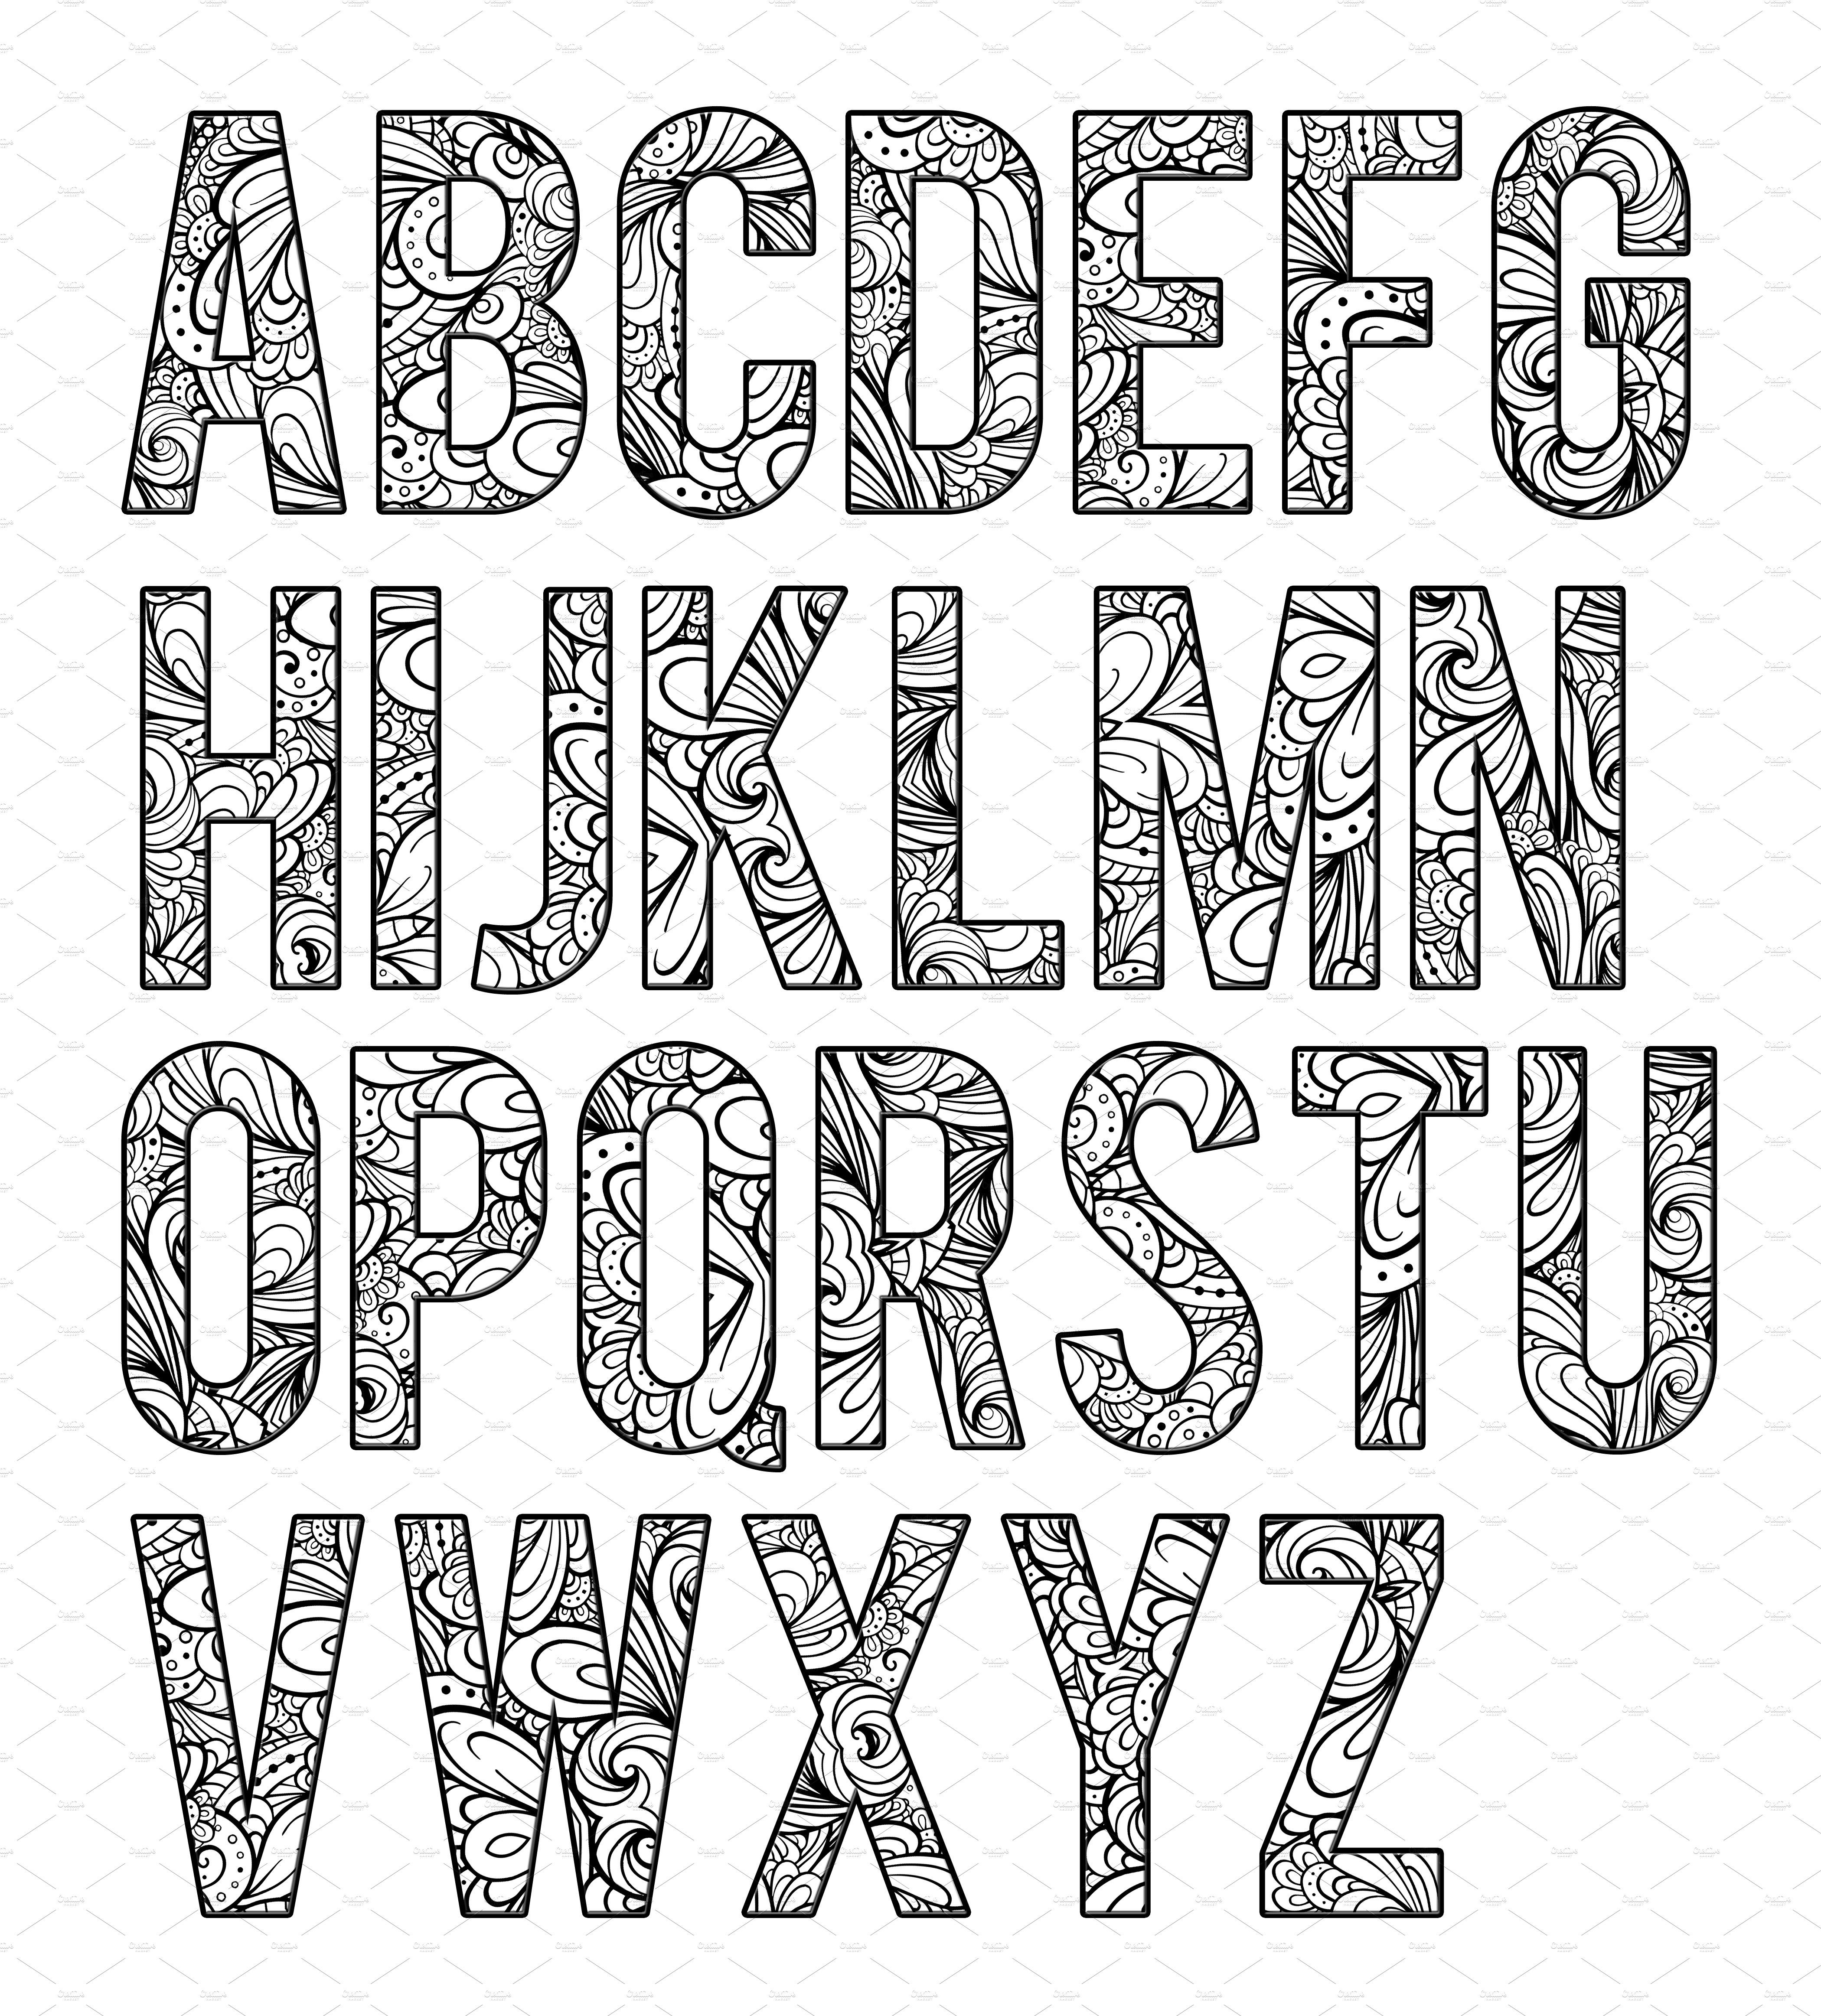 Coloring Letters Of The Alphabet B2 Lettering Alphabet Doodle Art Letters Coloring Letters